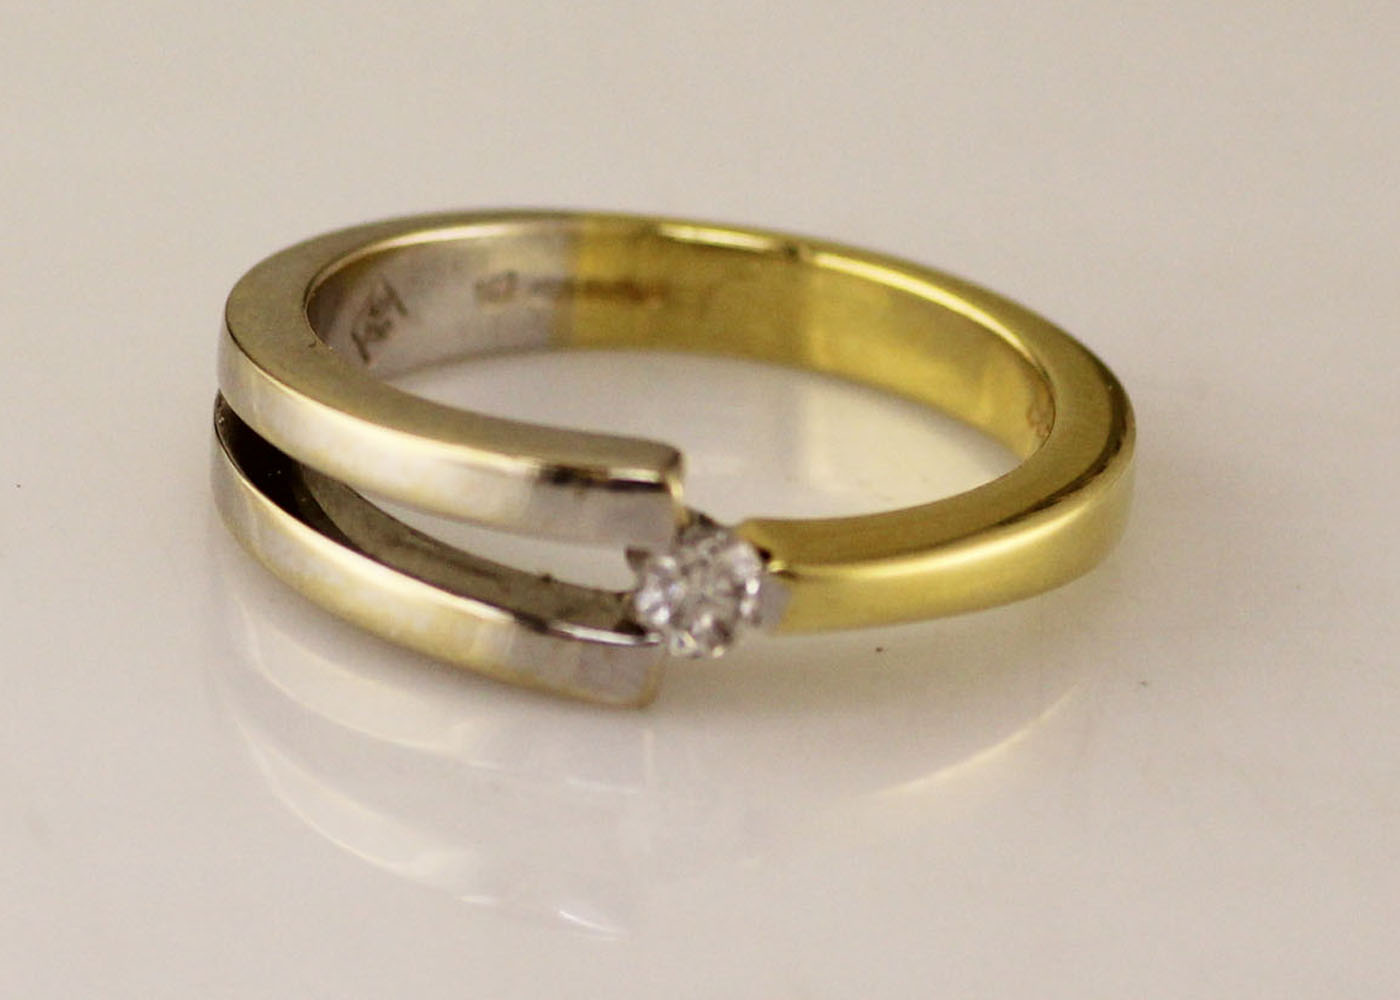 18ct Two Tone Diamond Set Ring 0.13 Carats - Image 6 of 8